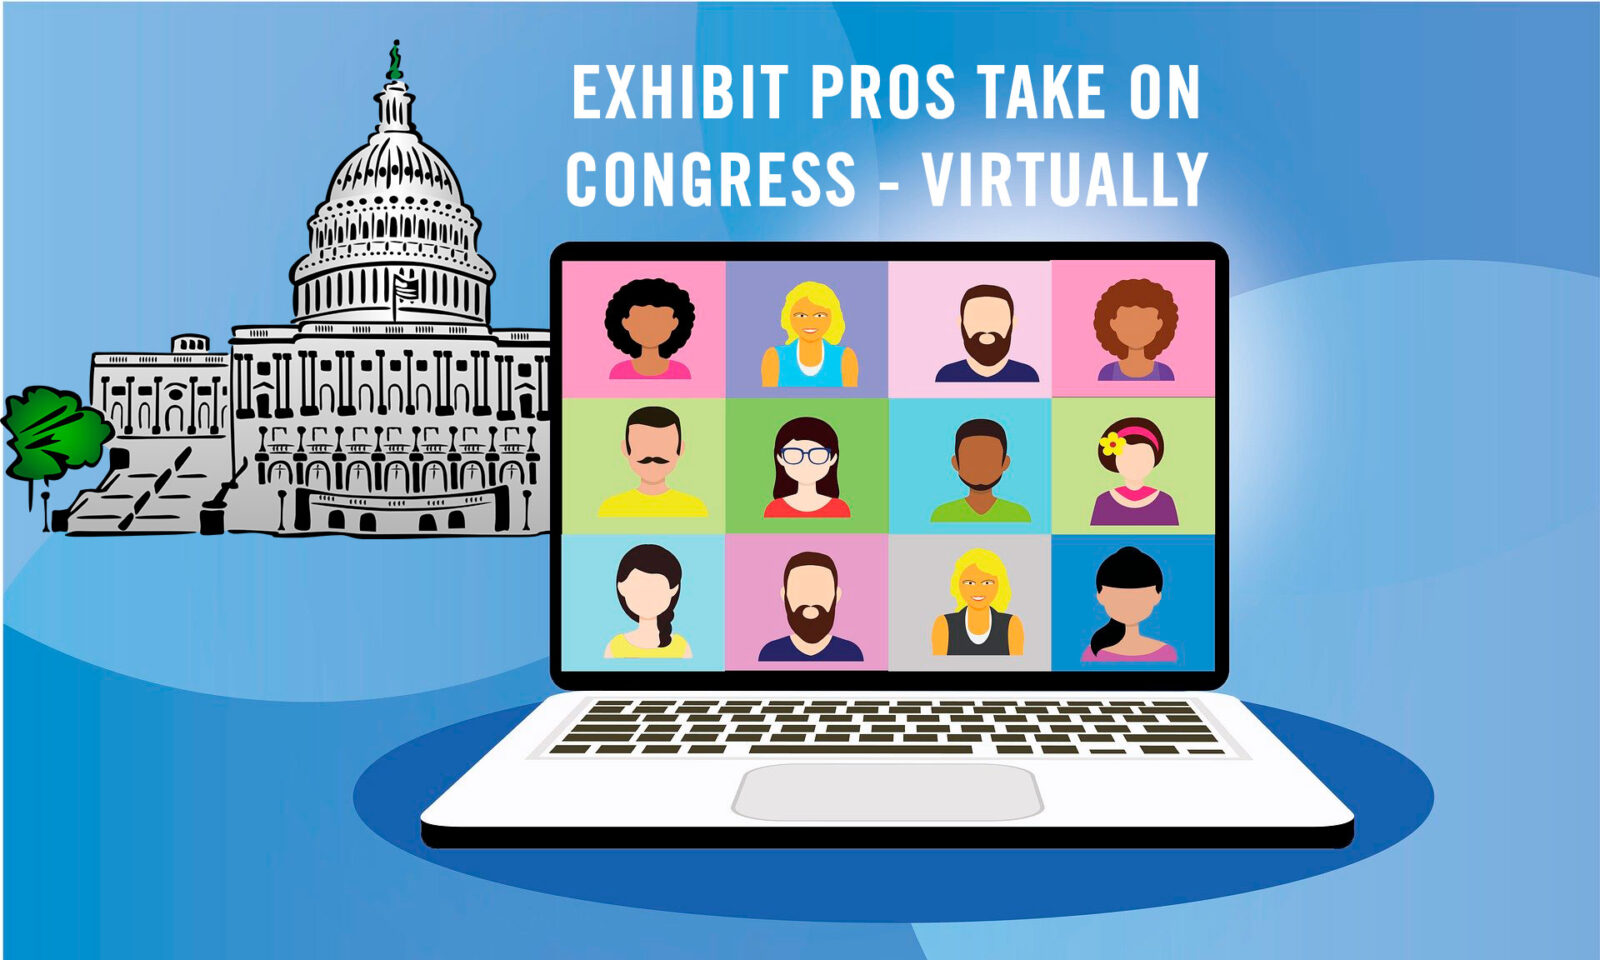 Exhibit pros go to capitol hill virtually